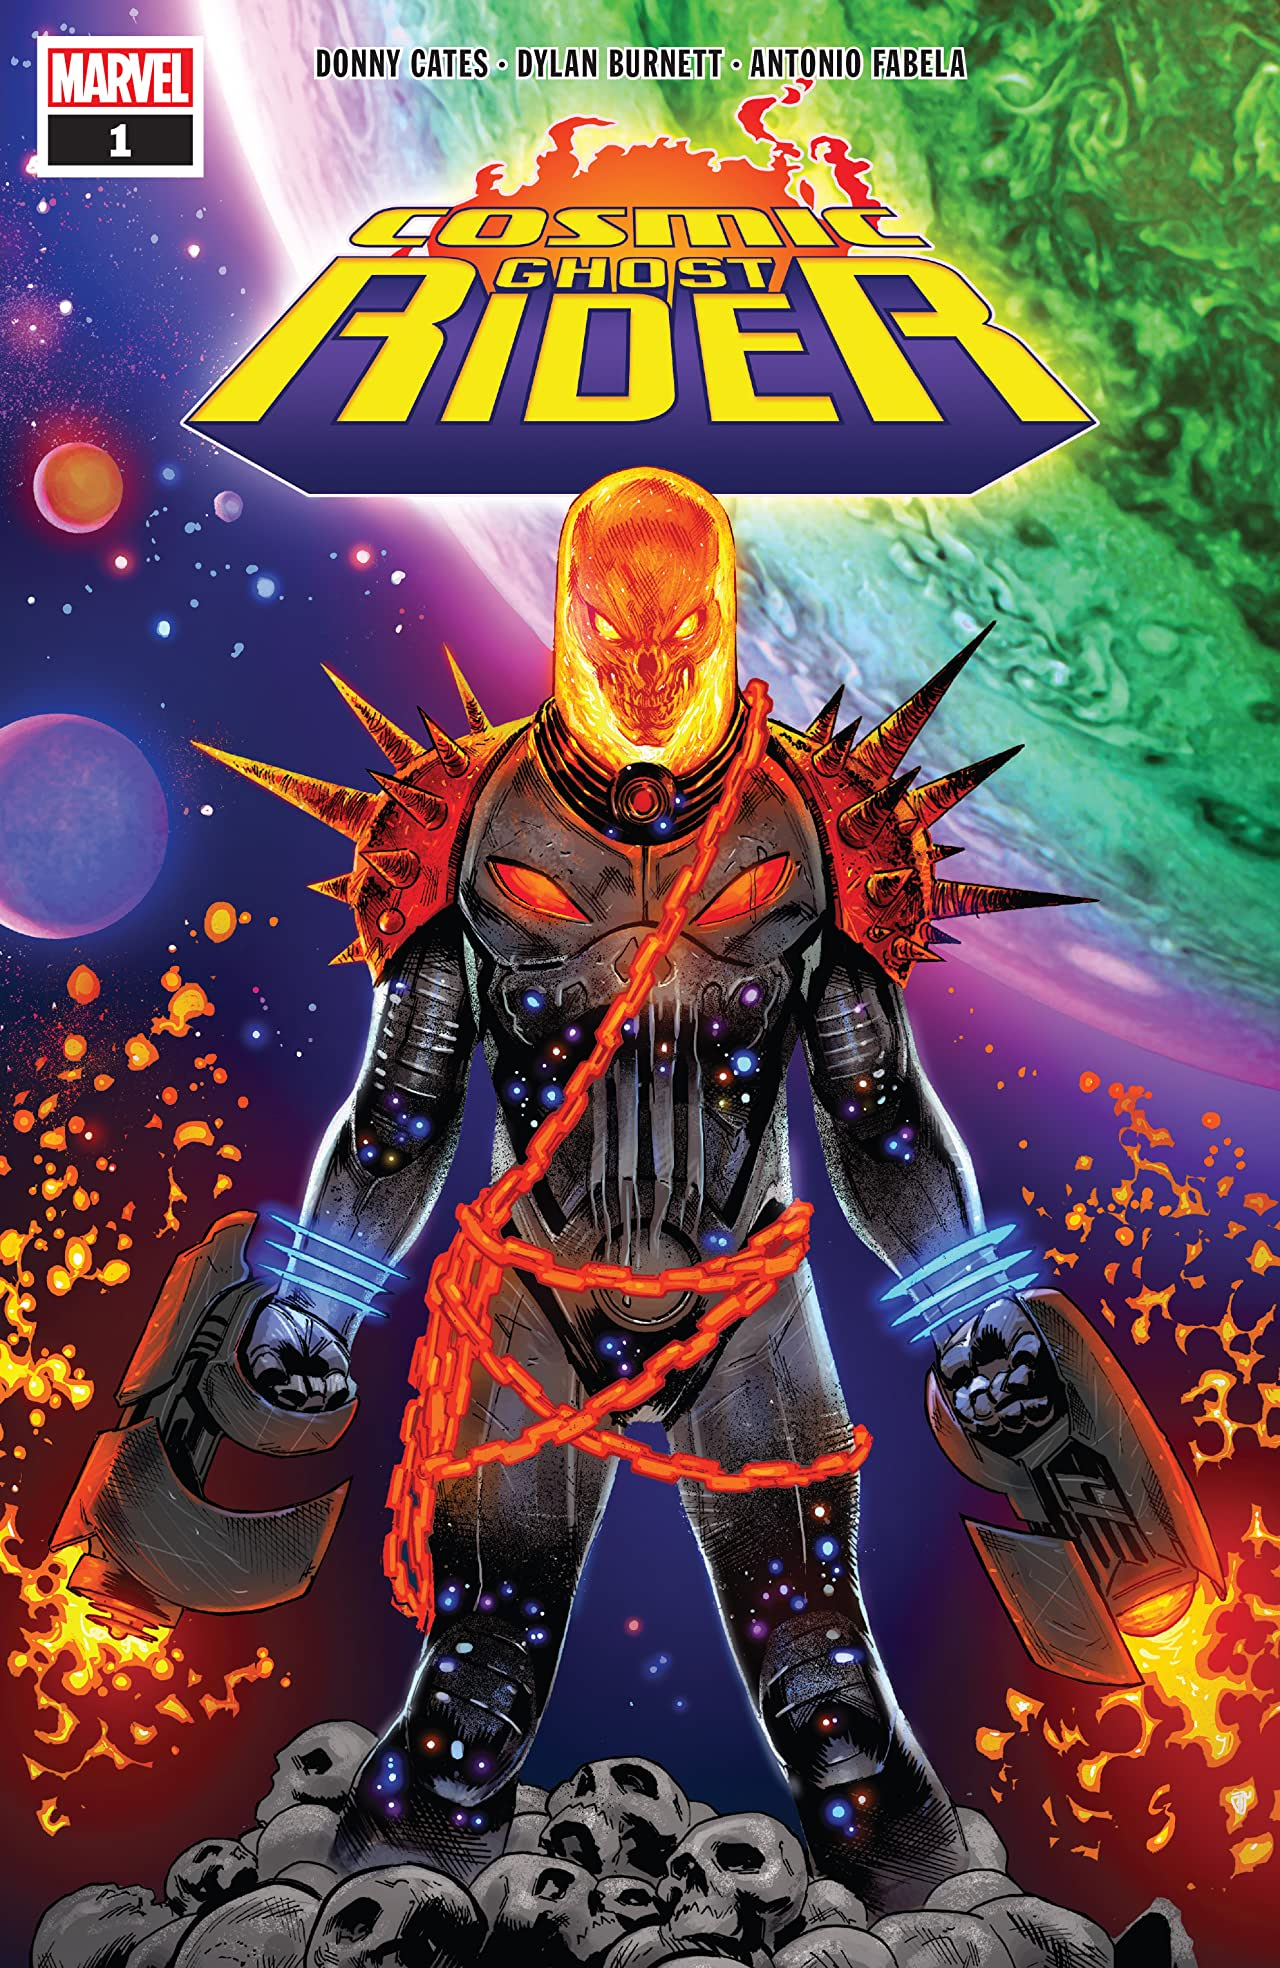 Cosmic Ghost Rider (2018) #1 (of 5)